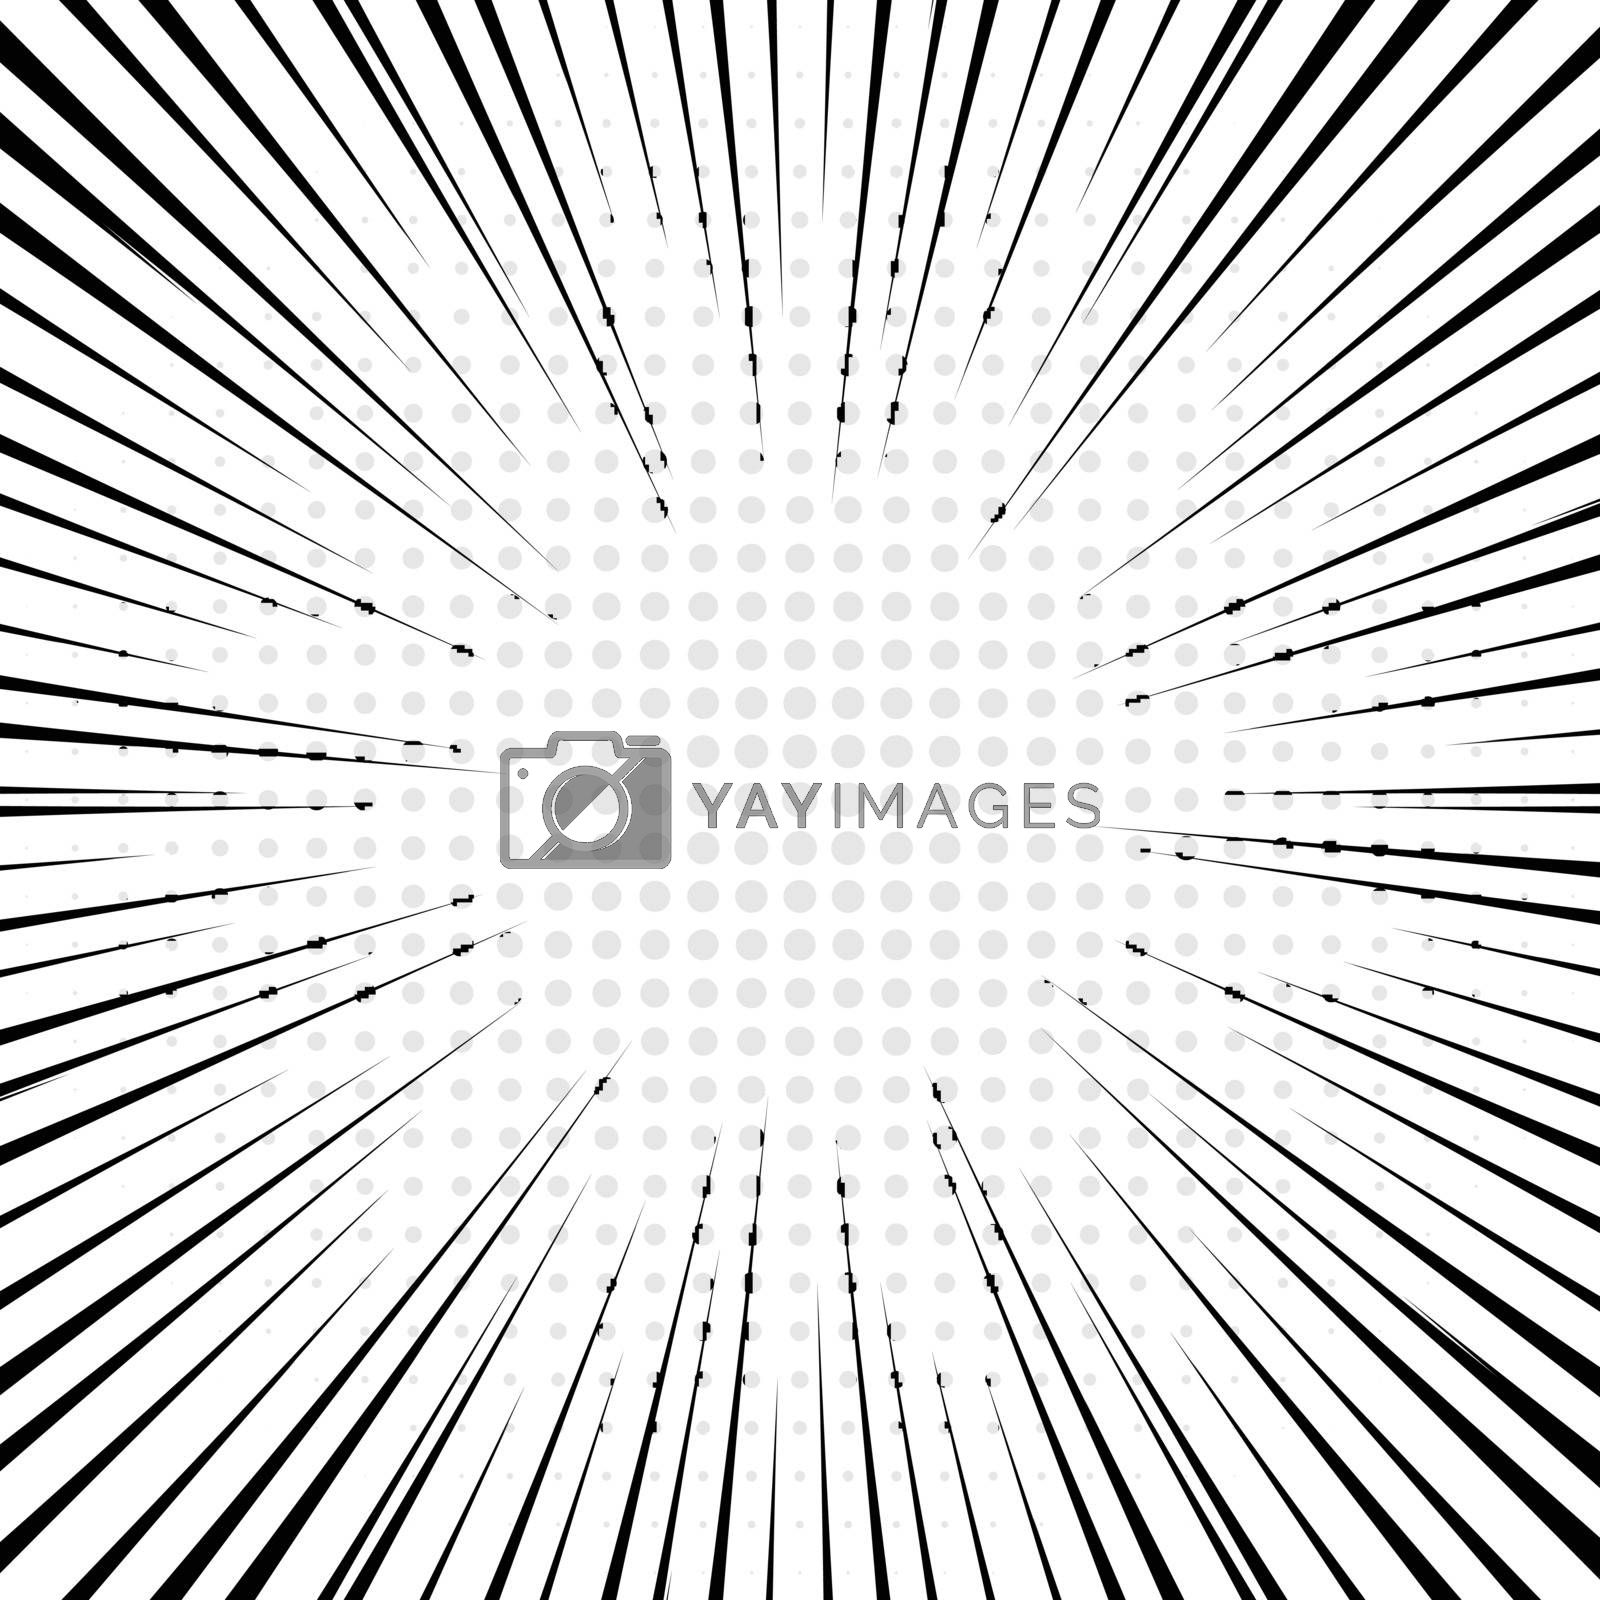 Black radial lines with gray halftone for comic book background. Manga speed frame. Vector illustration